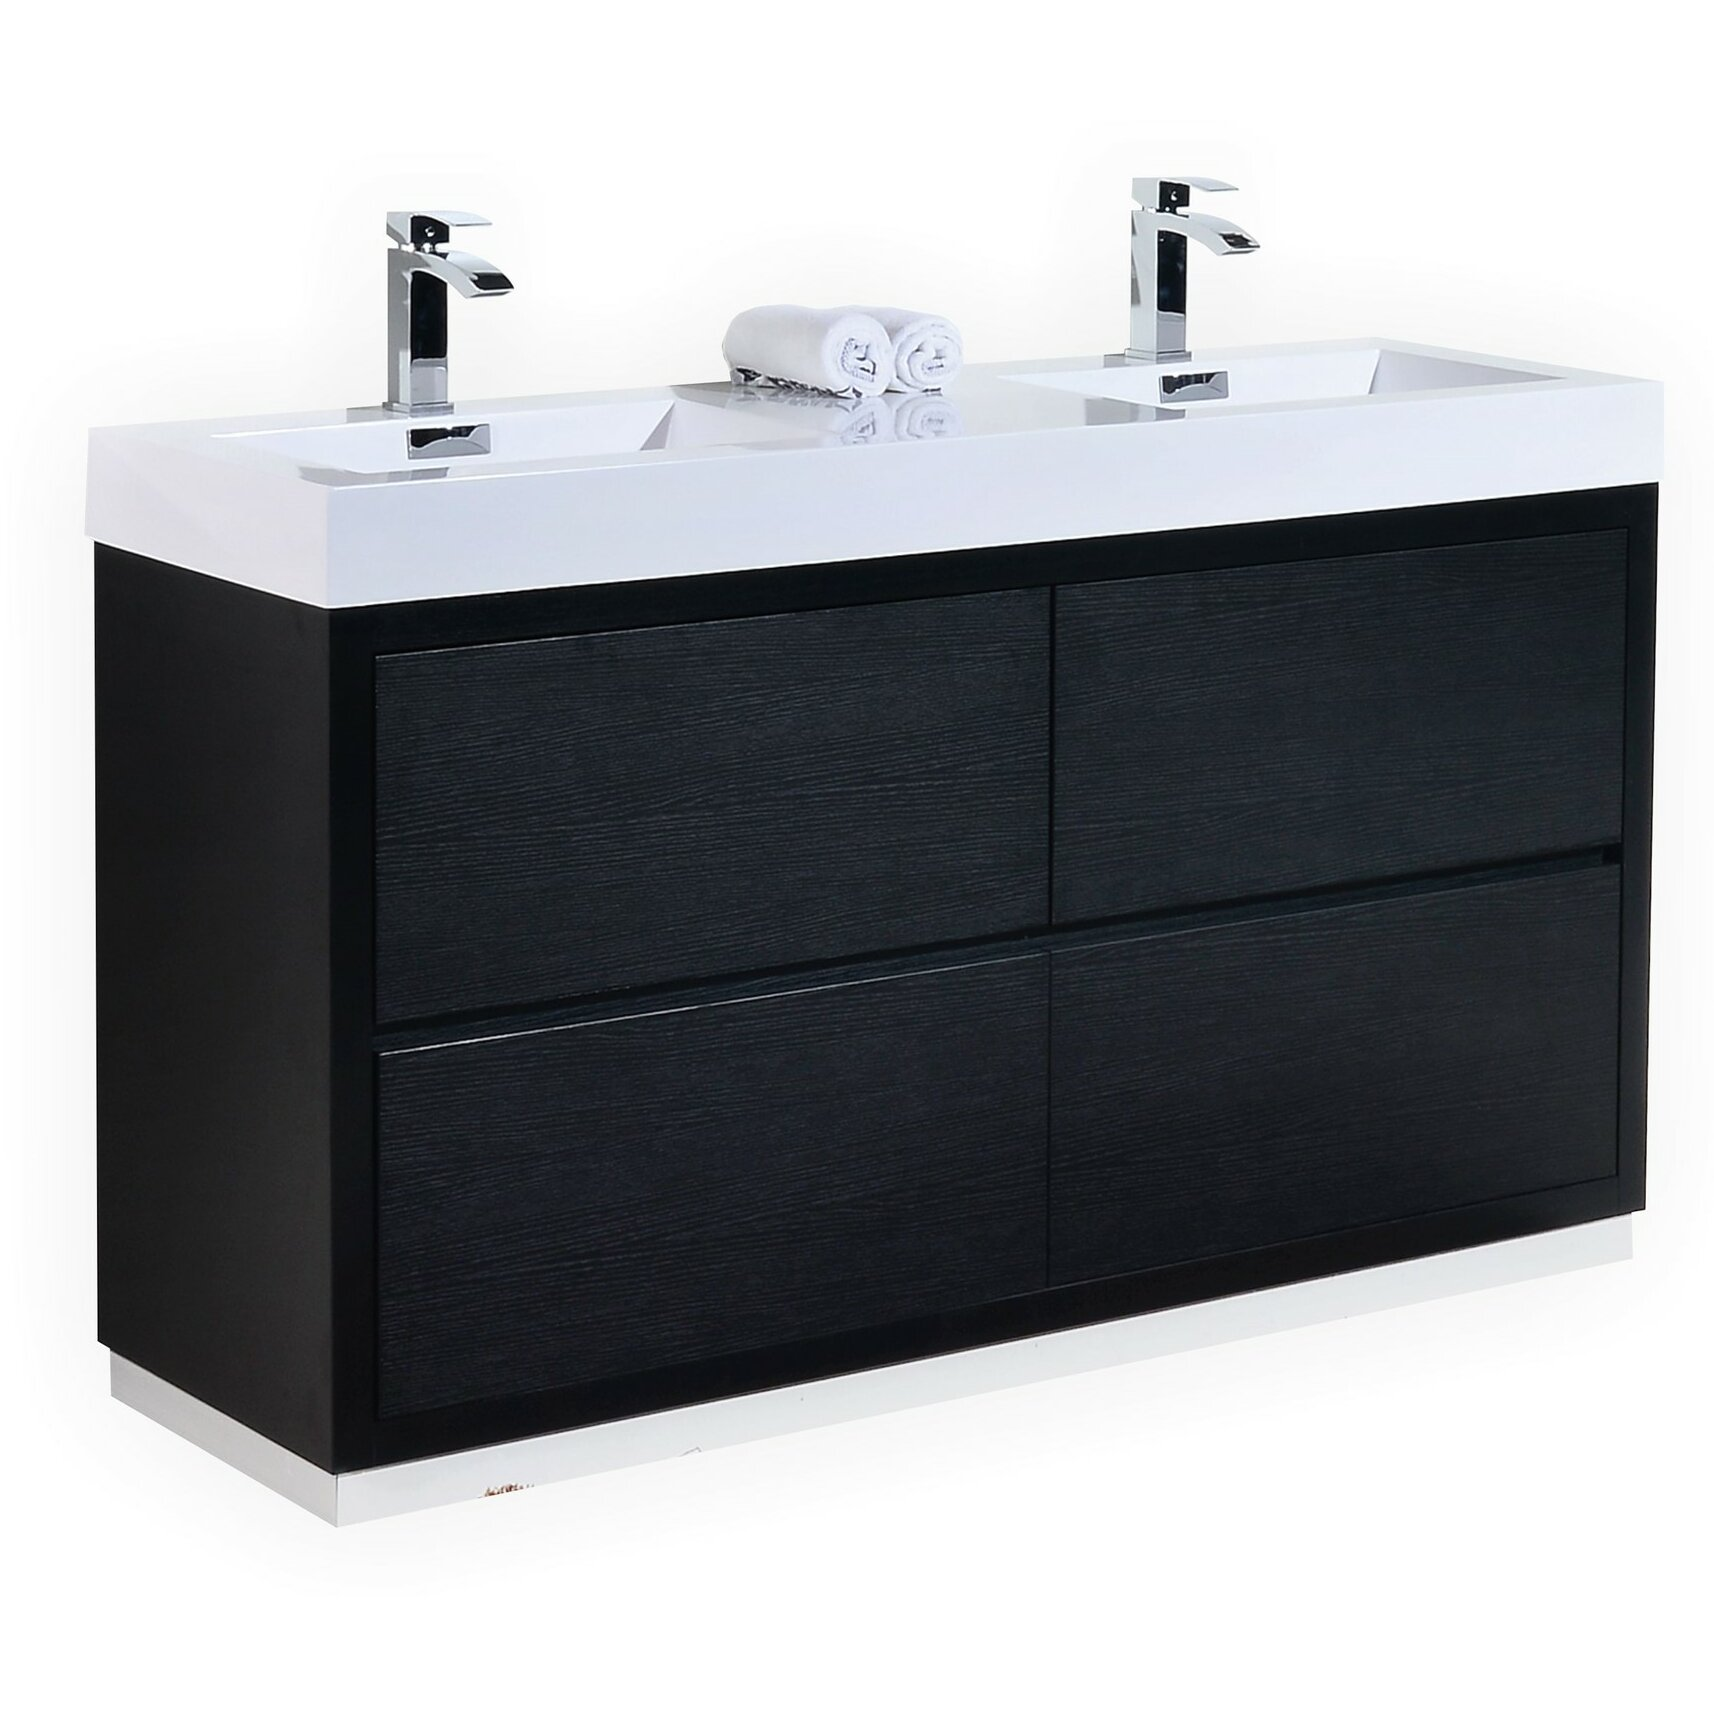 Kube Bath Bliss 60 Double Free Standing Modern Bathroom Vanity Set Reviews